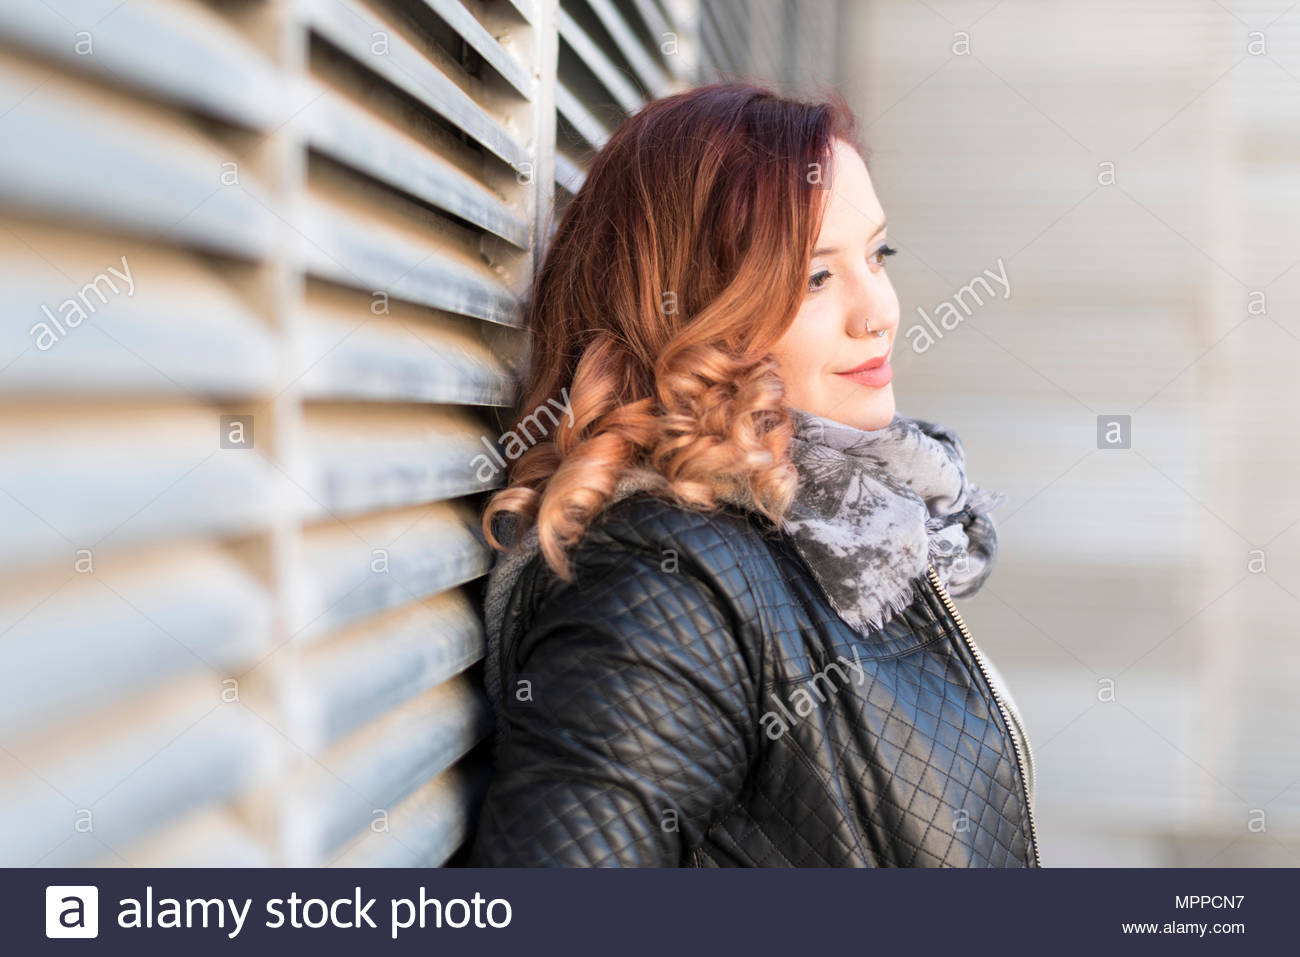 Daydreaming woman with curly hair and nose piercing - Stock Image